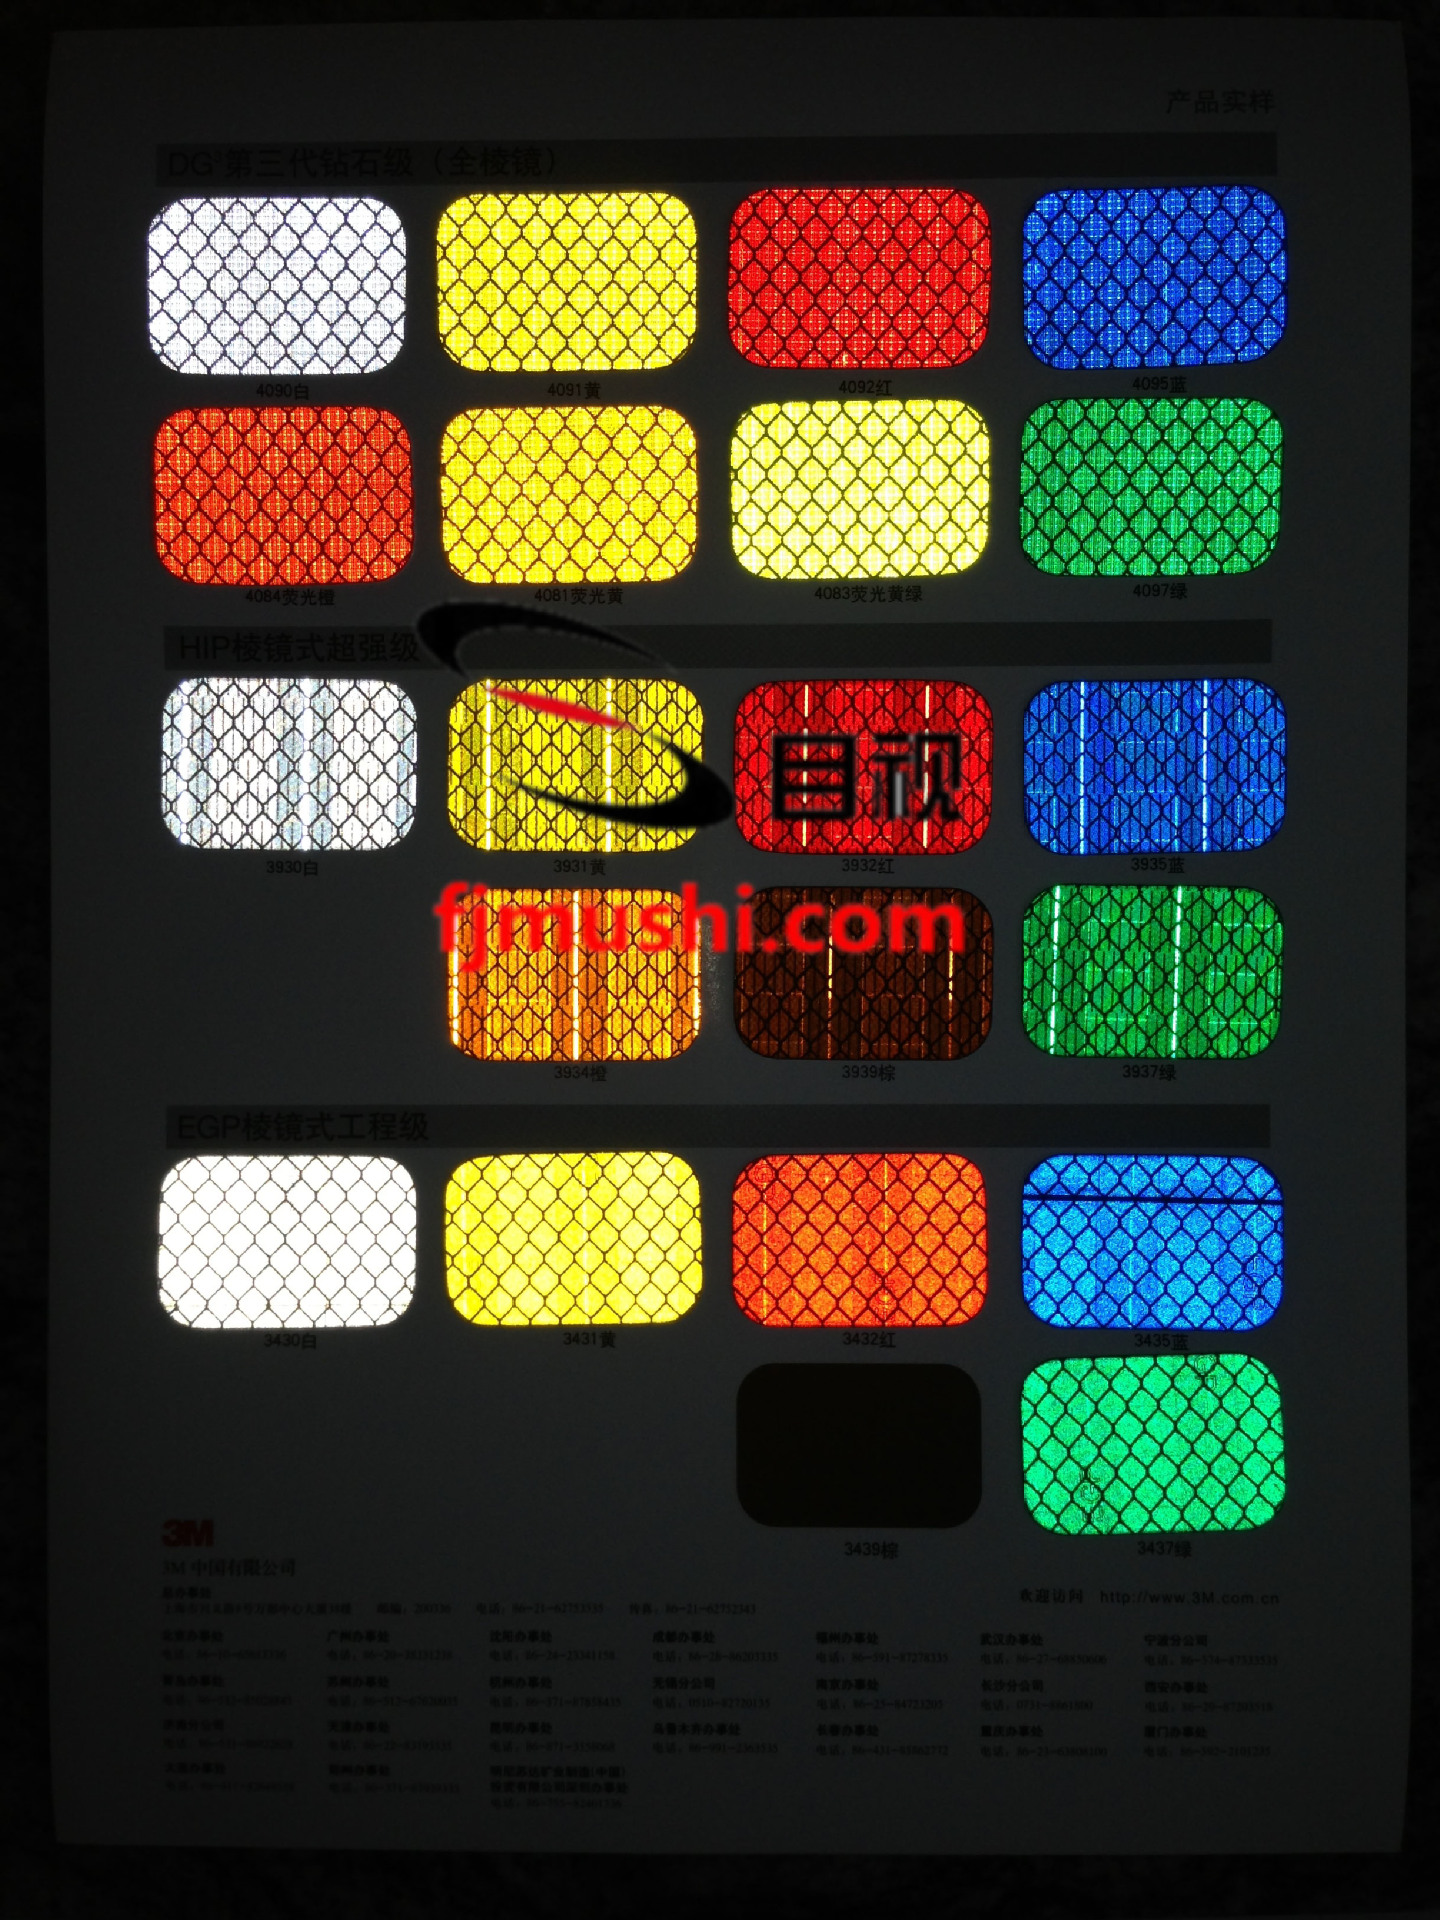 930 Series Micro Prism Reflective Film Ultra-strength Grade Reflective Film Reflective Material Traffic Identification Only